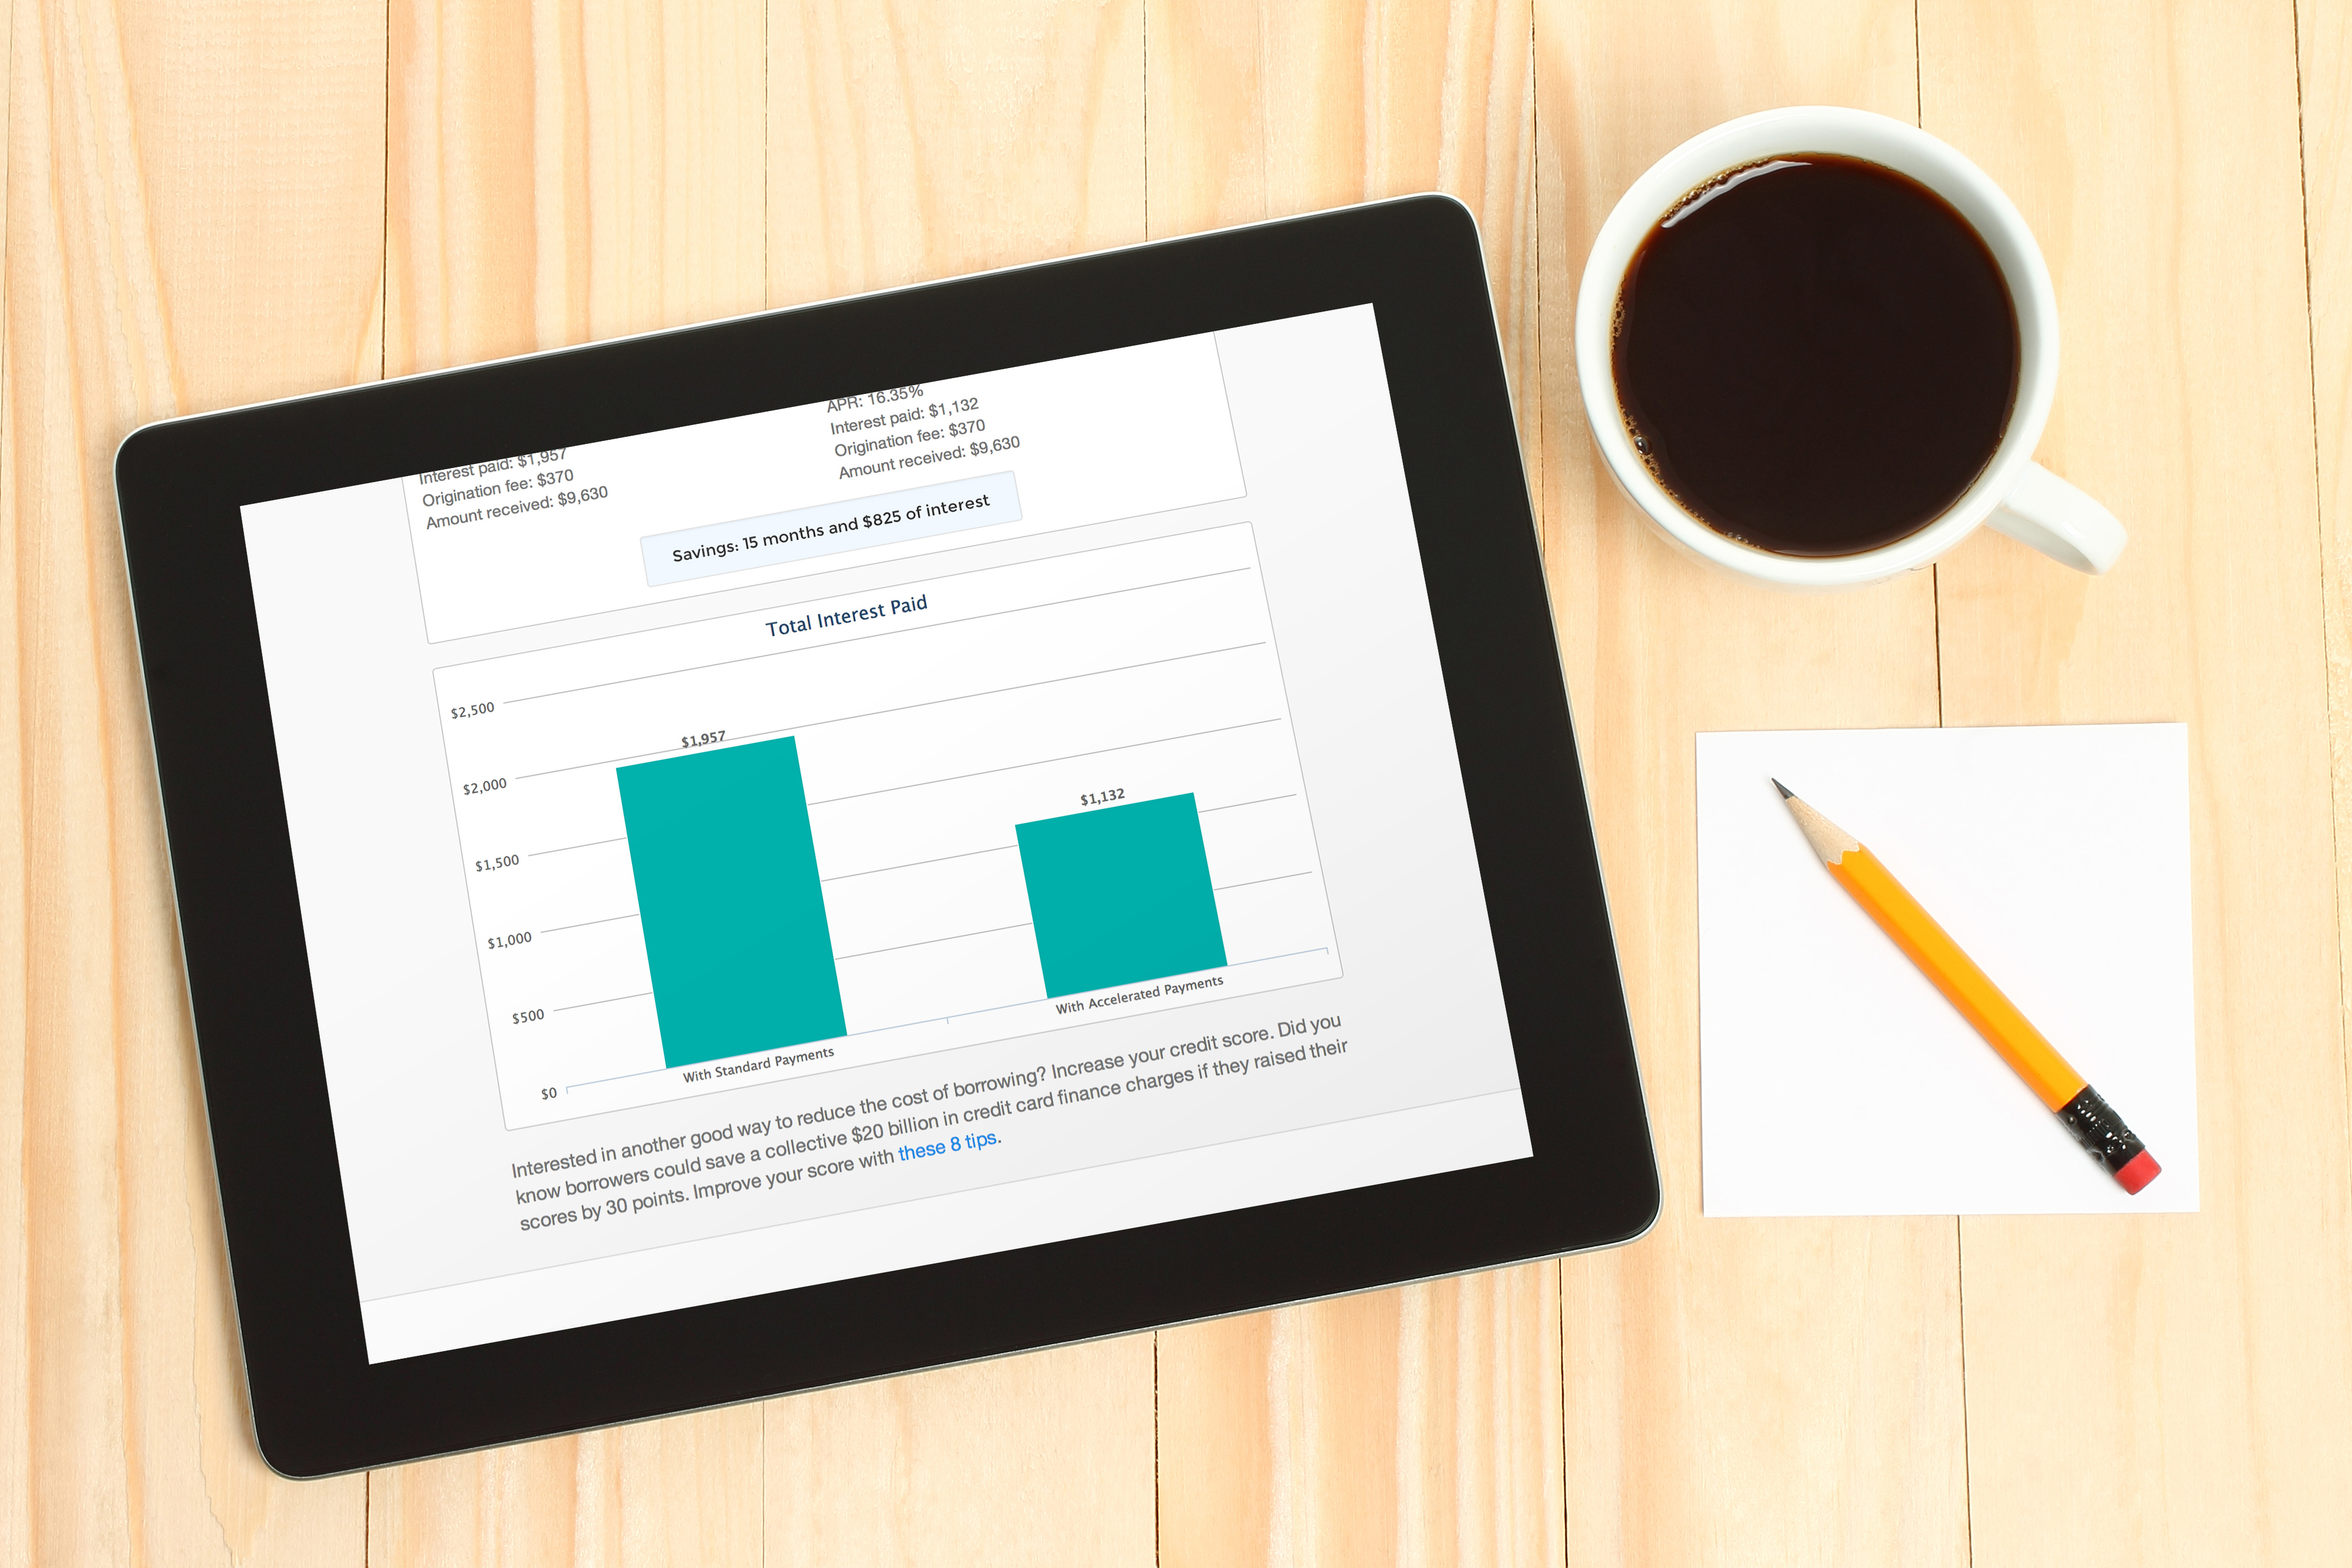 Tablet with graphs - Upstart Personal Loans